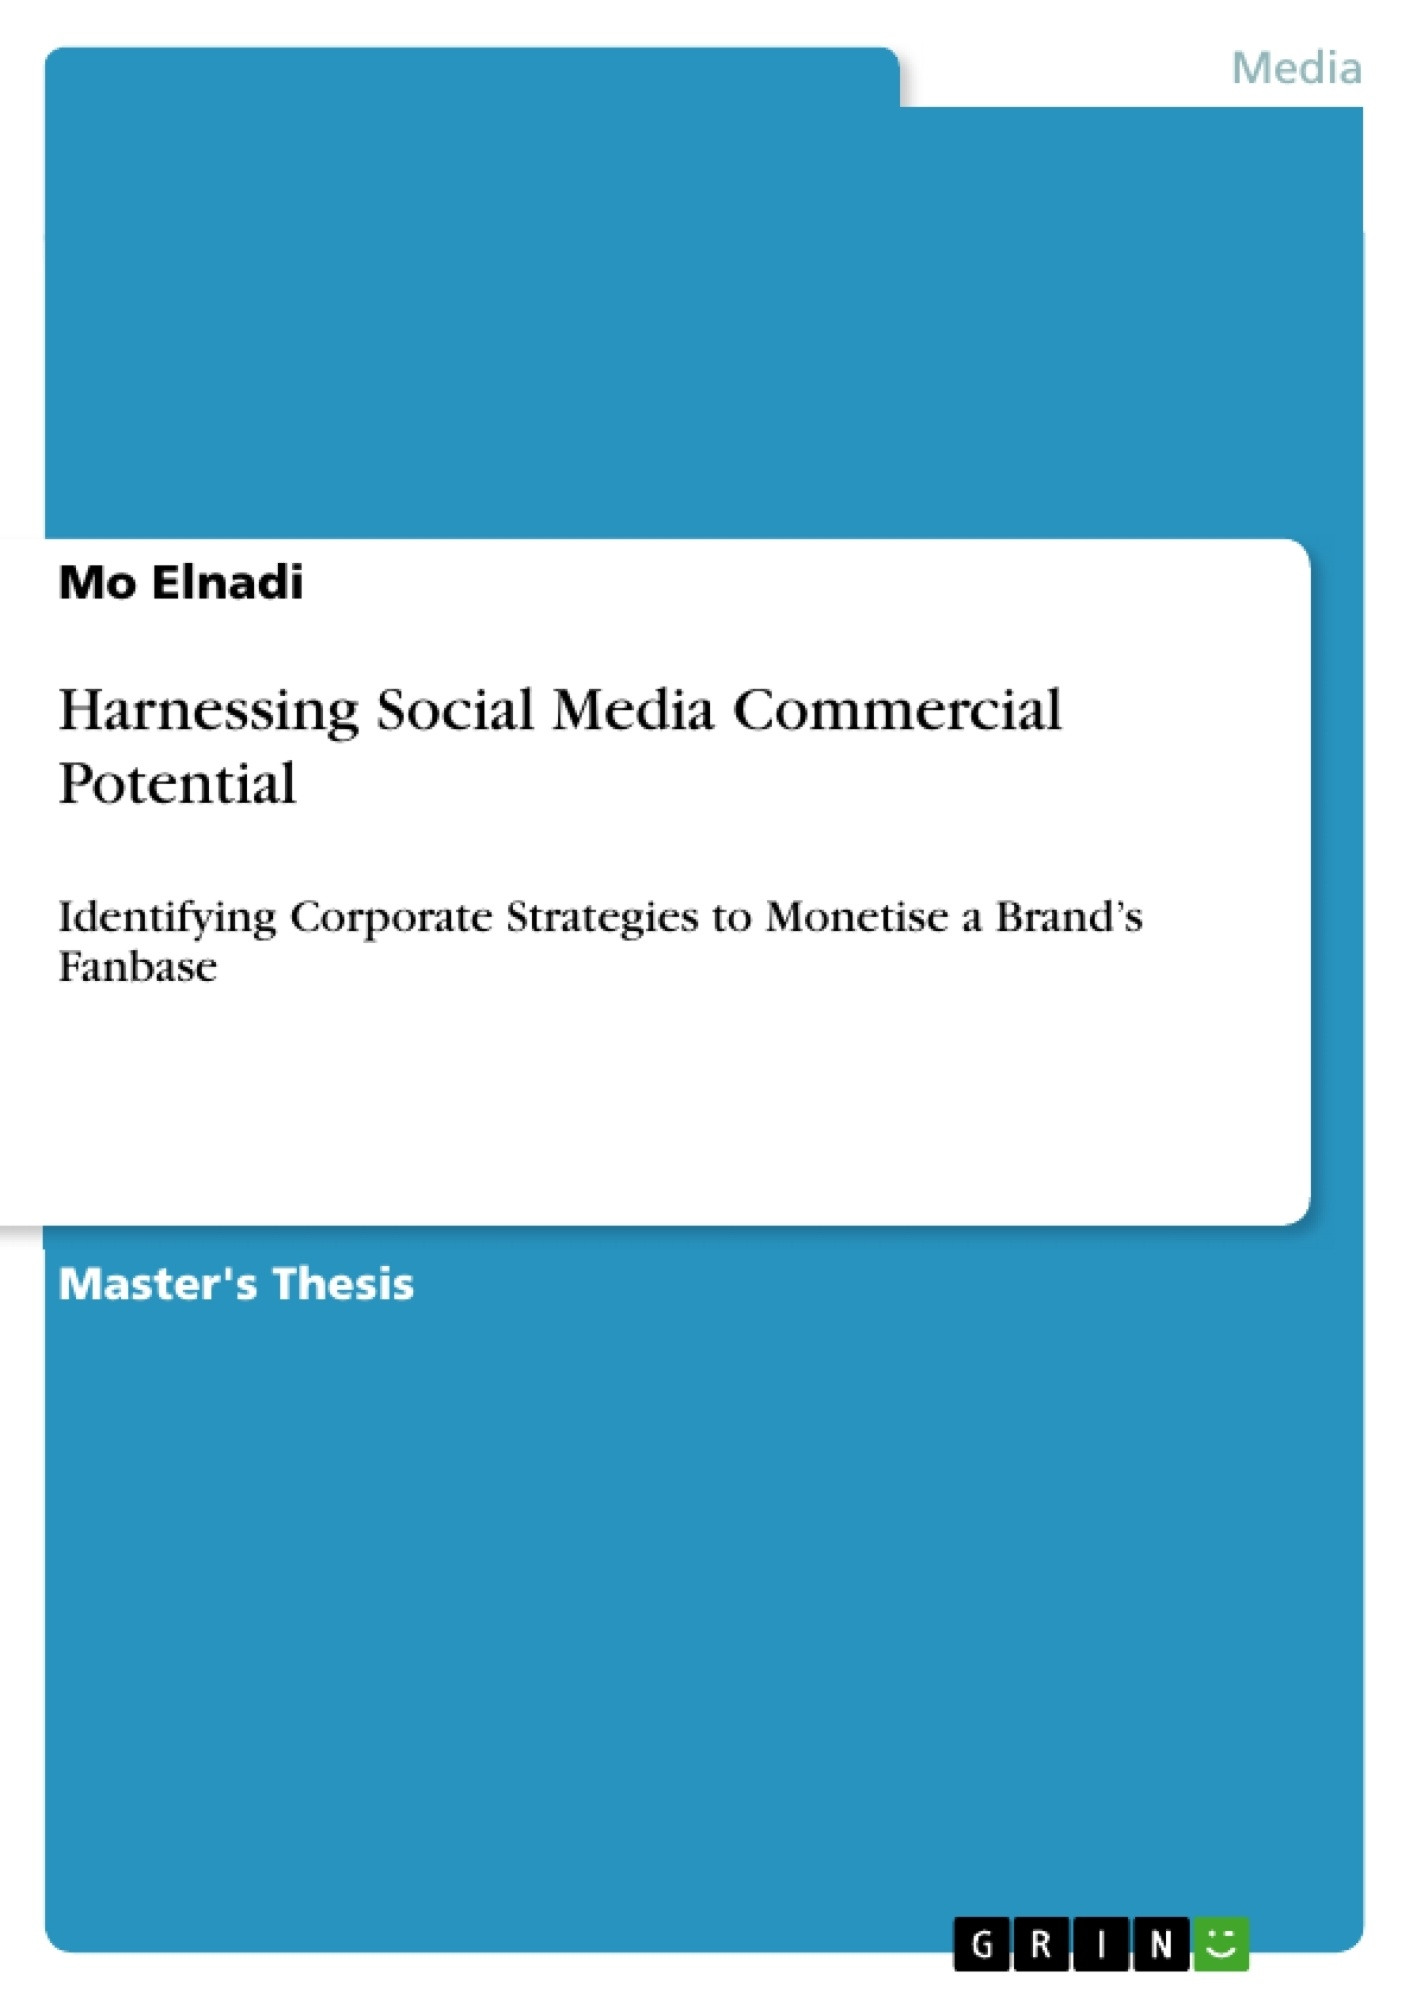 Title: Harnessing Social Media Commercial Potential